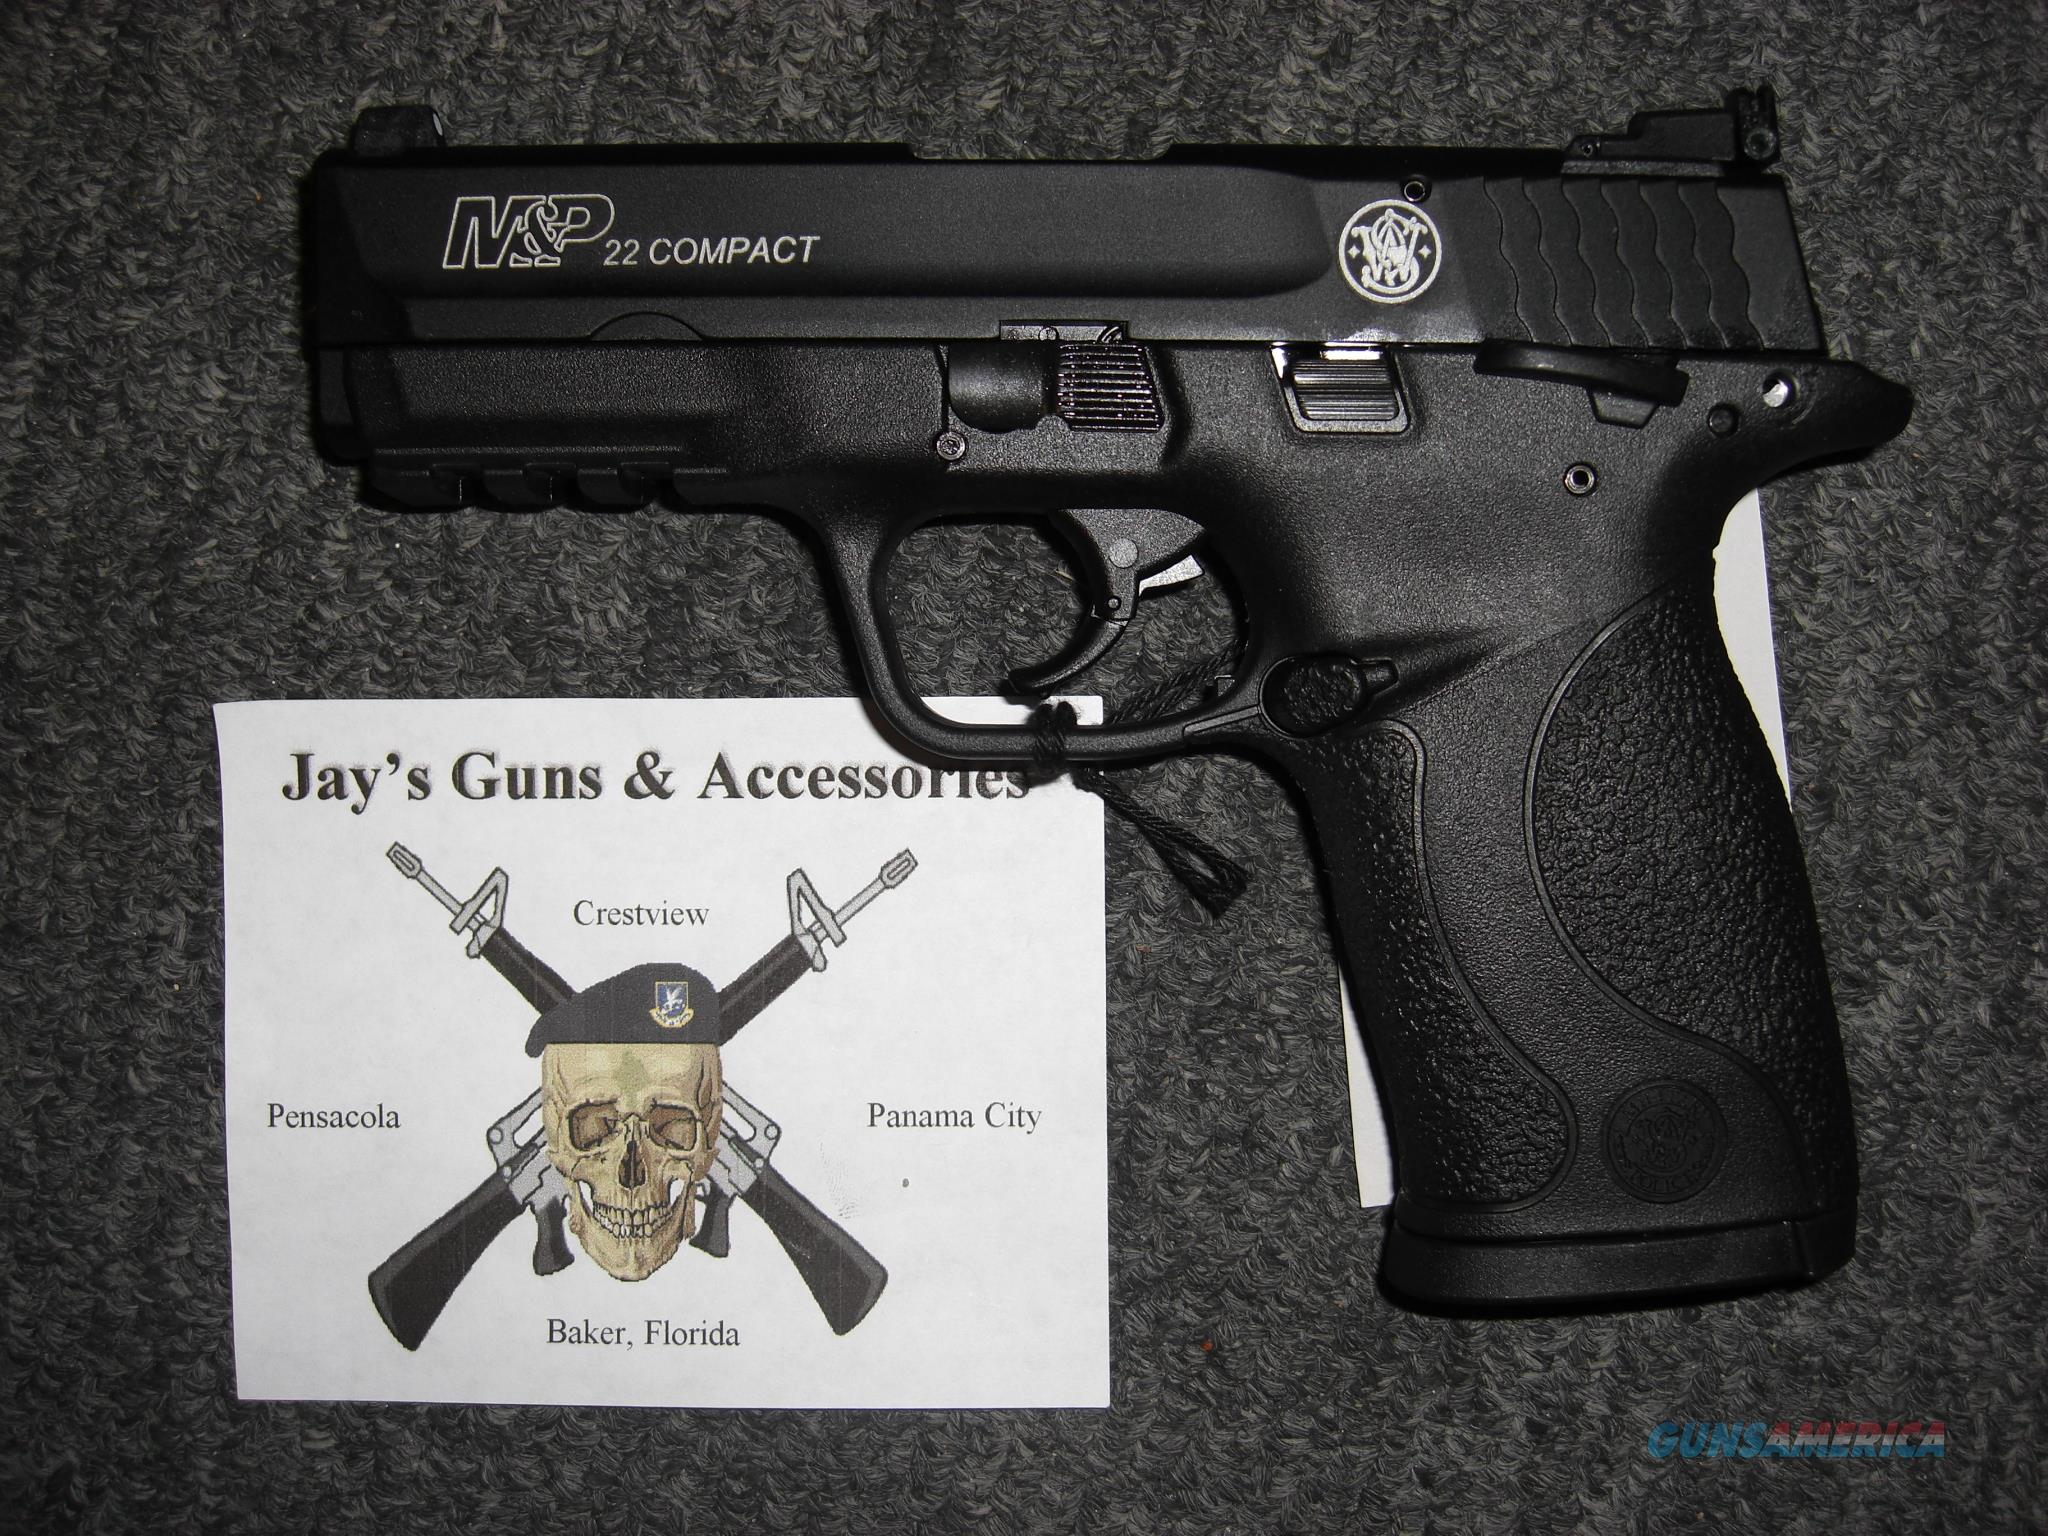 Smith & Wesson M&P22 Compact (108390)  Guns > Pistols > Smith & Wesson Pistols - Autos > Polymer Frame